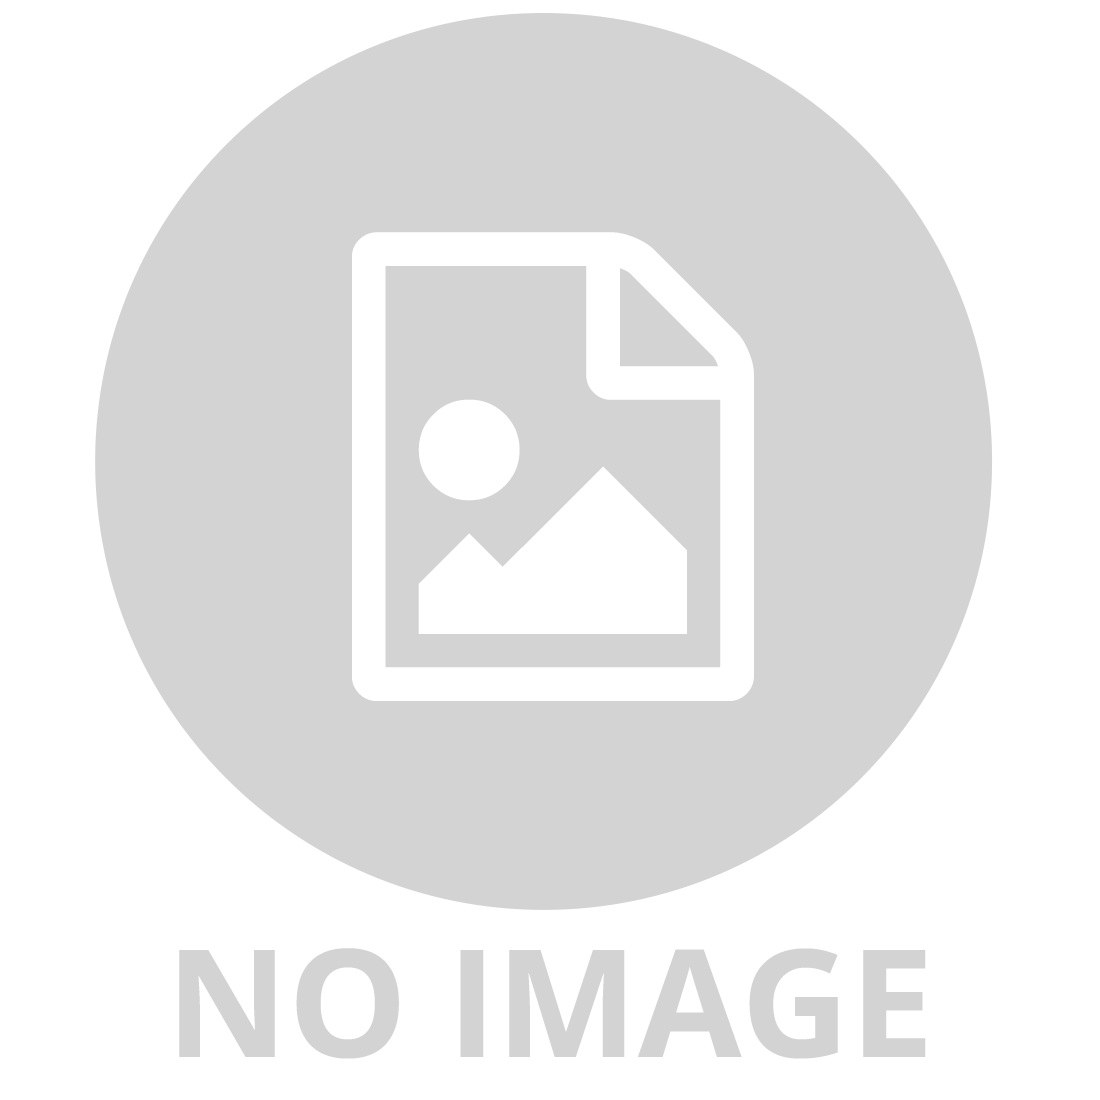 SLIDESHOW PROJECTOR TORCH FROZEN OR SPIDERMAN